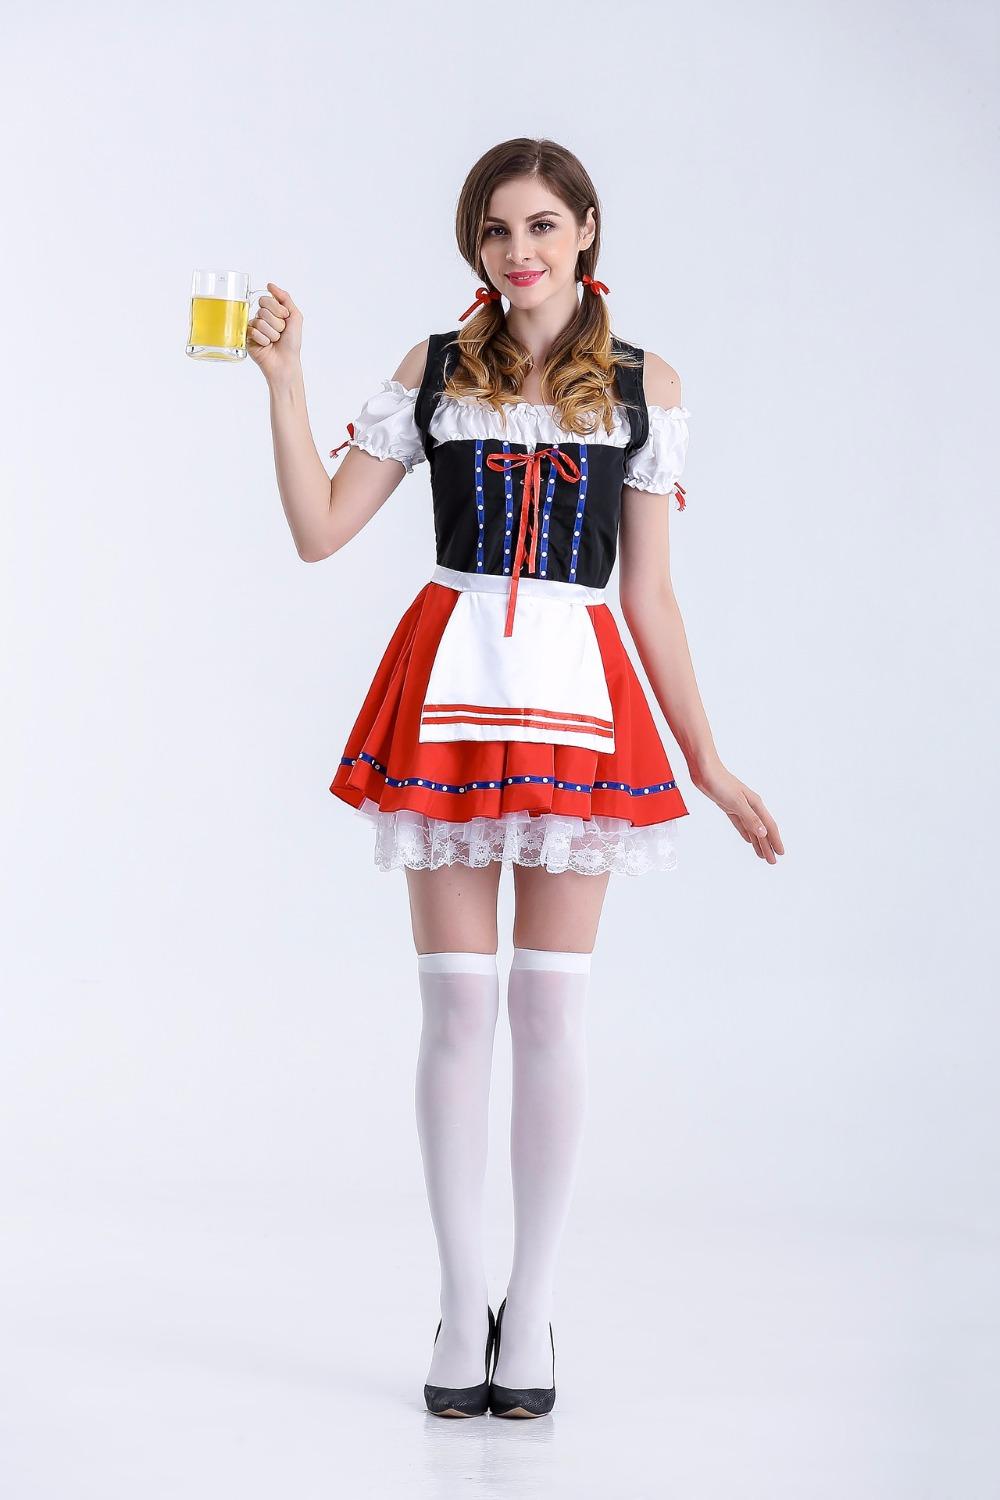 Free Shipping Women's Germany Oktoberfest Bavarian County Beer Girl Ladies Wench Waitress Serving Maid Costume M-XL